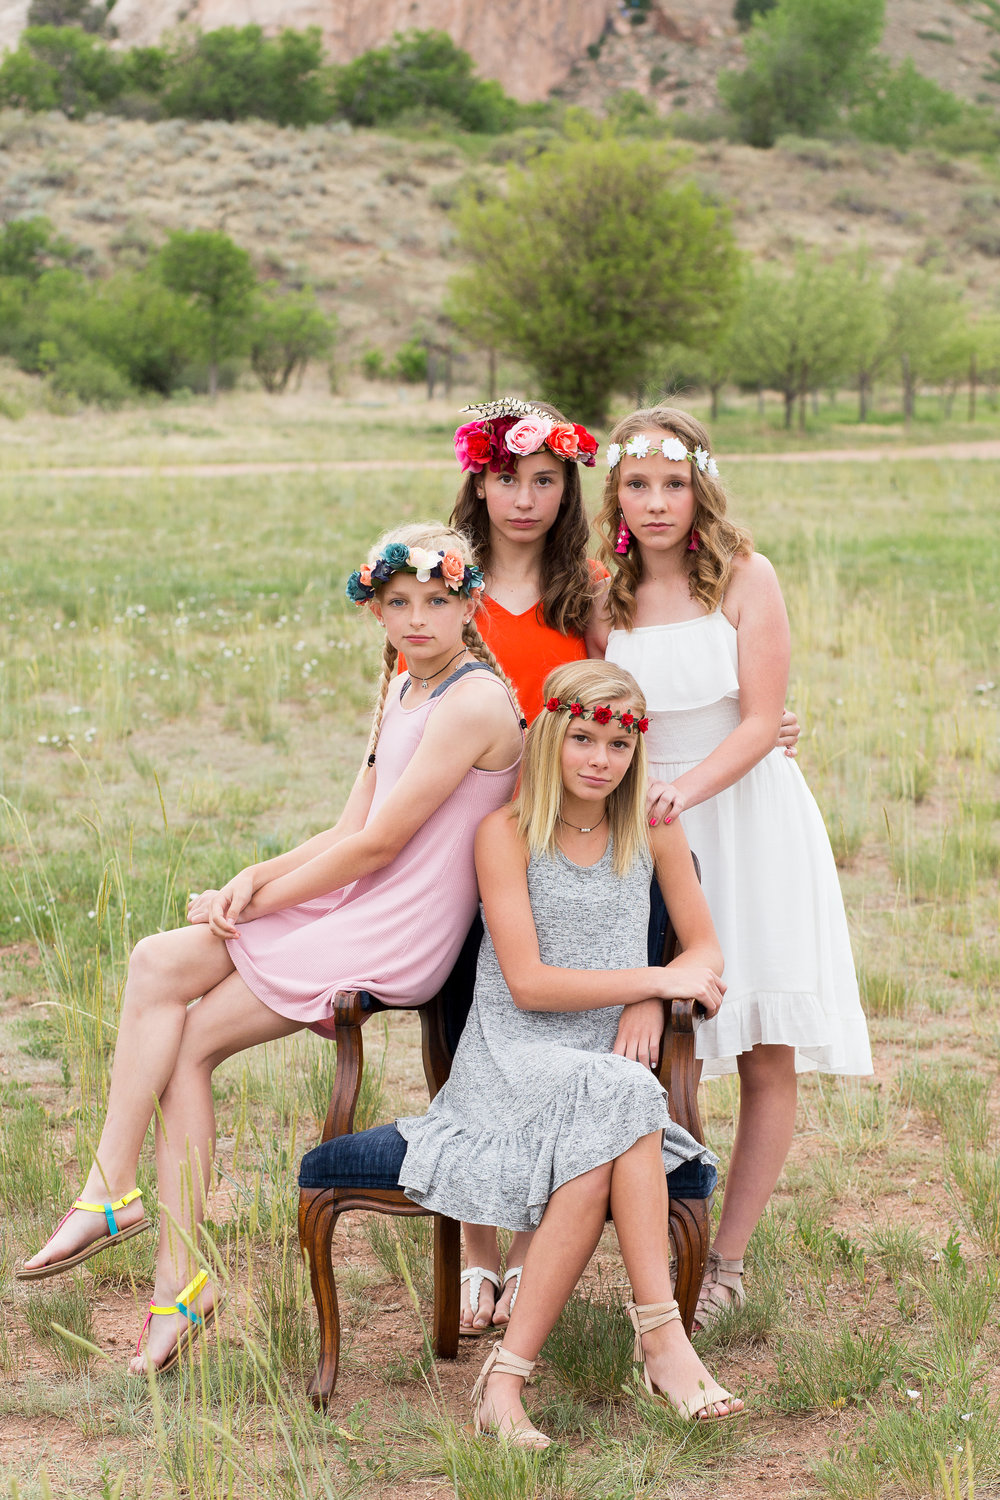 Colorado Springs Senior and Tween Photographer | Colorado  Springs Tween and Senior Photography | Stacy Carosa Photography | Middle School friends session with girls sitting on chair with floral crowns